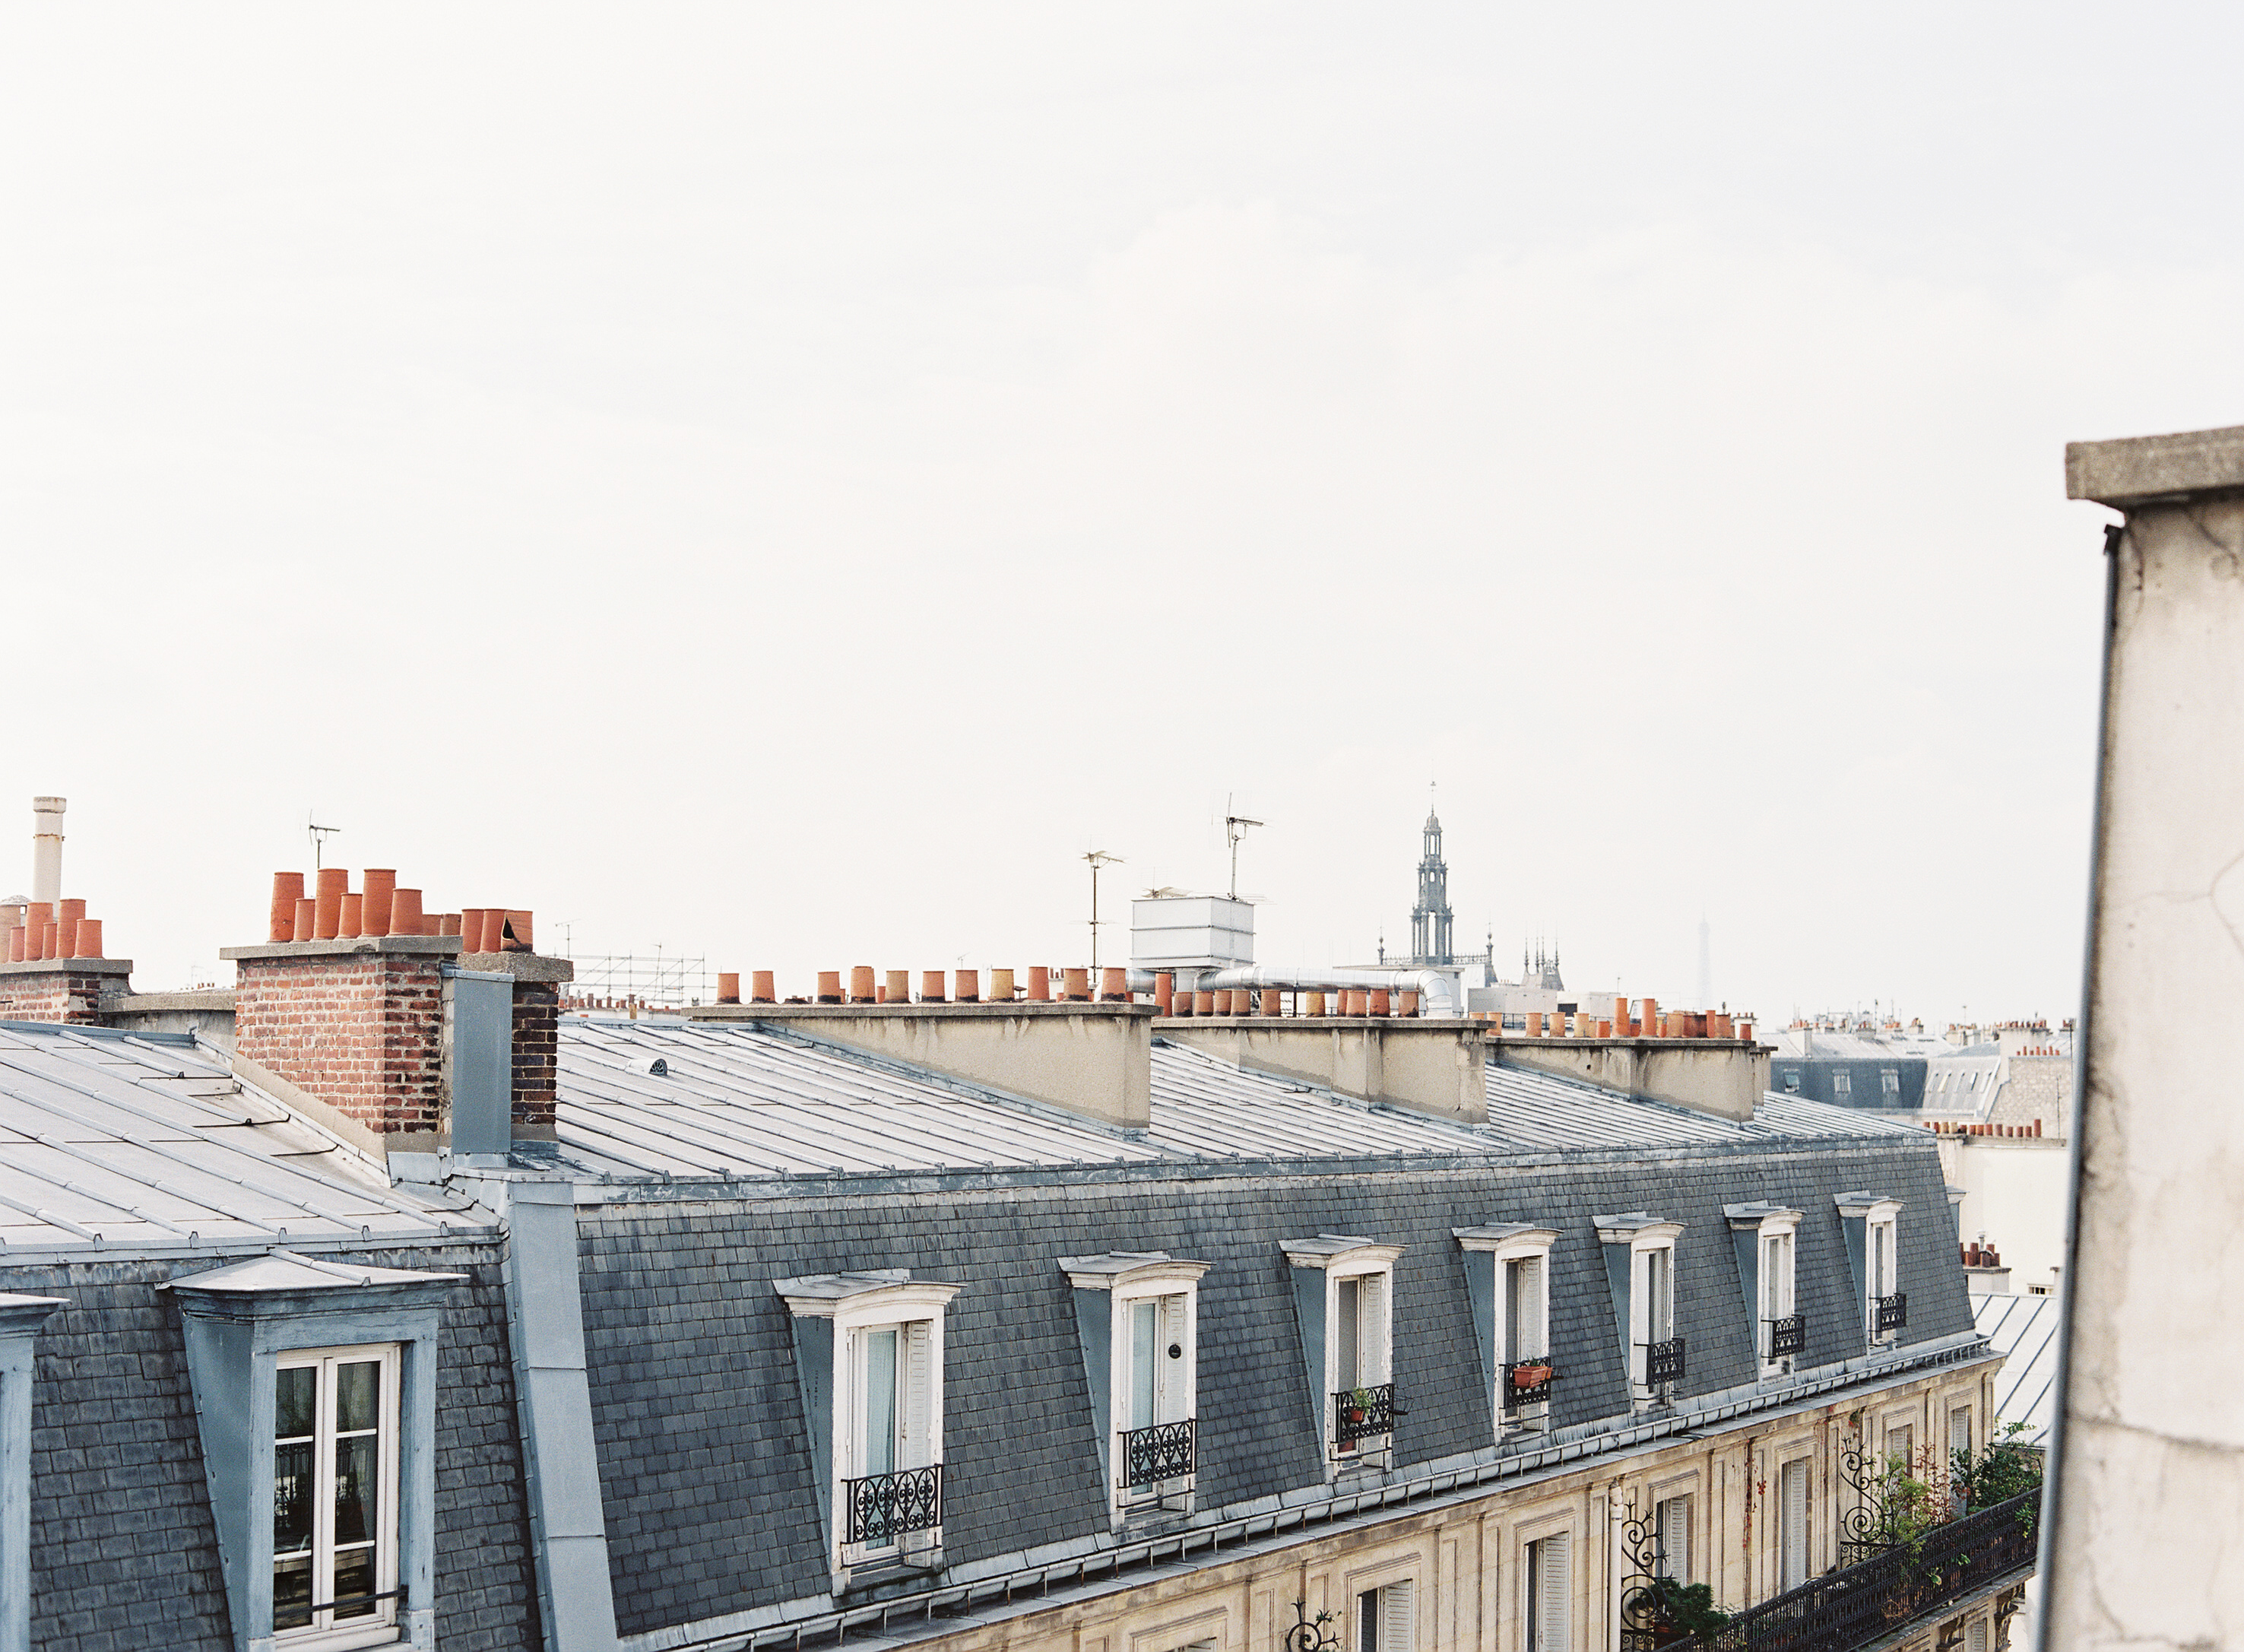 HiP Paris blog. Living, loving, learning in Paris. One of Paris' most distinctive features: its rooftops. Photo by Marjorie Preval.